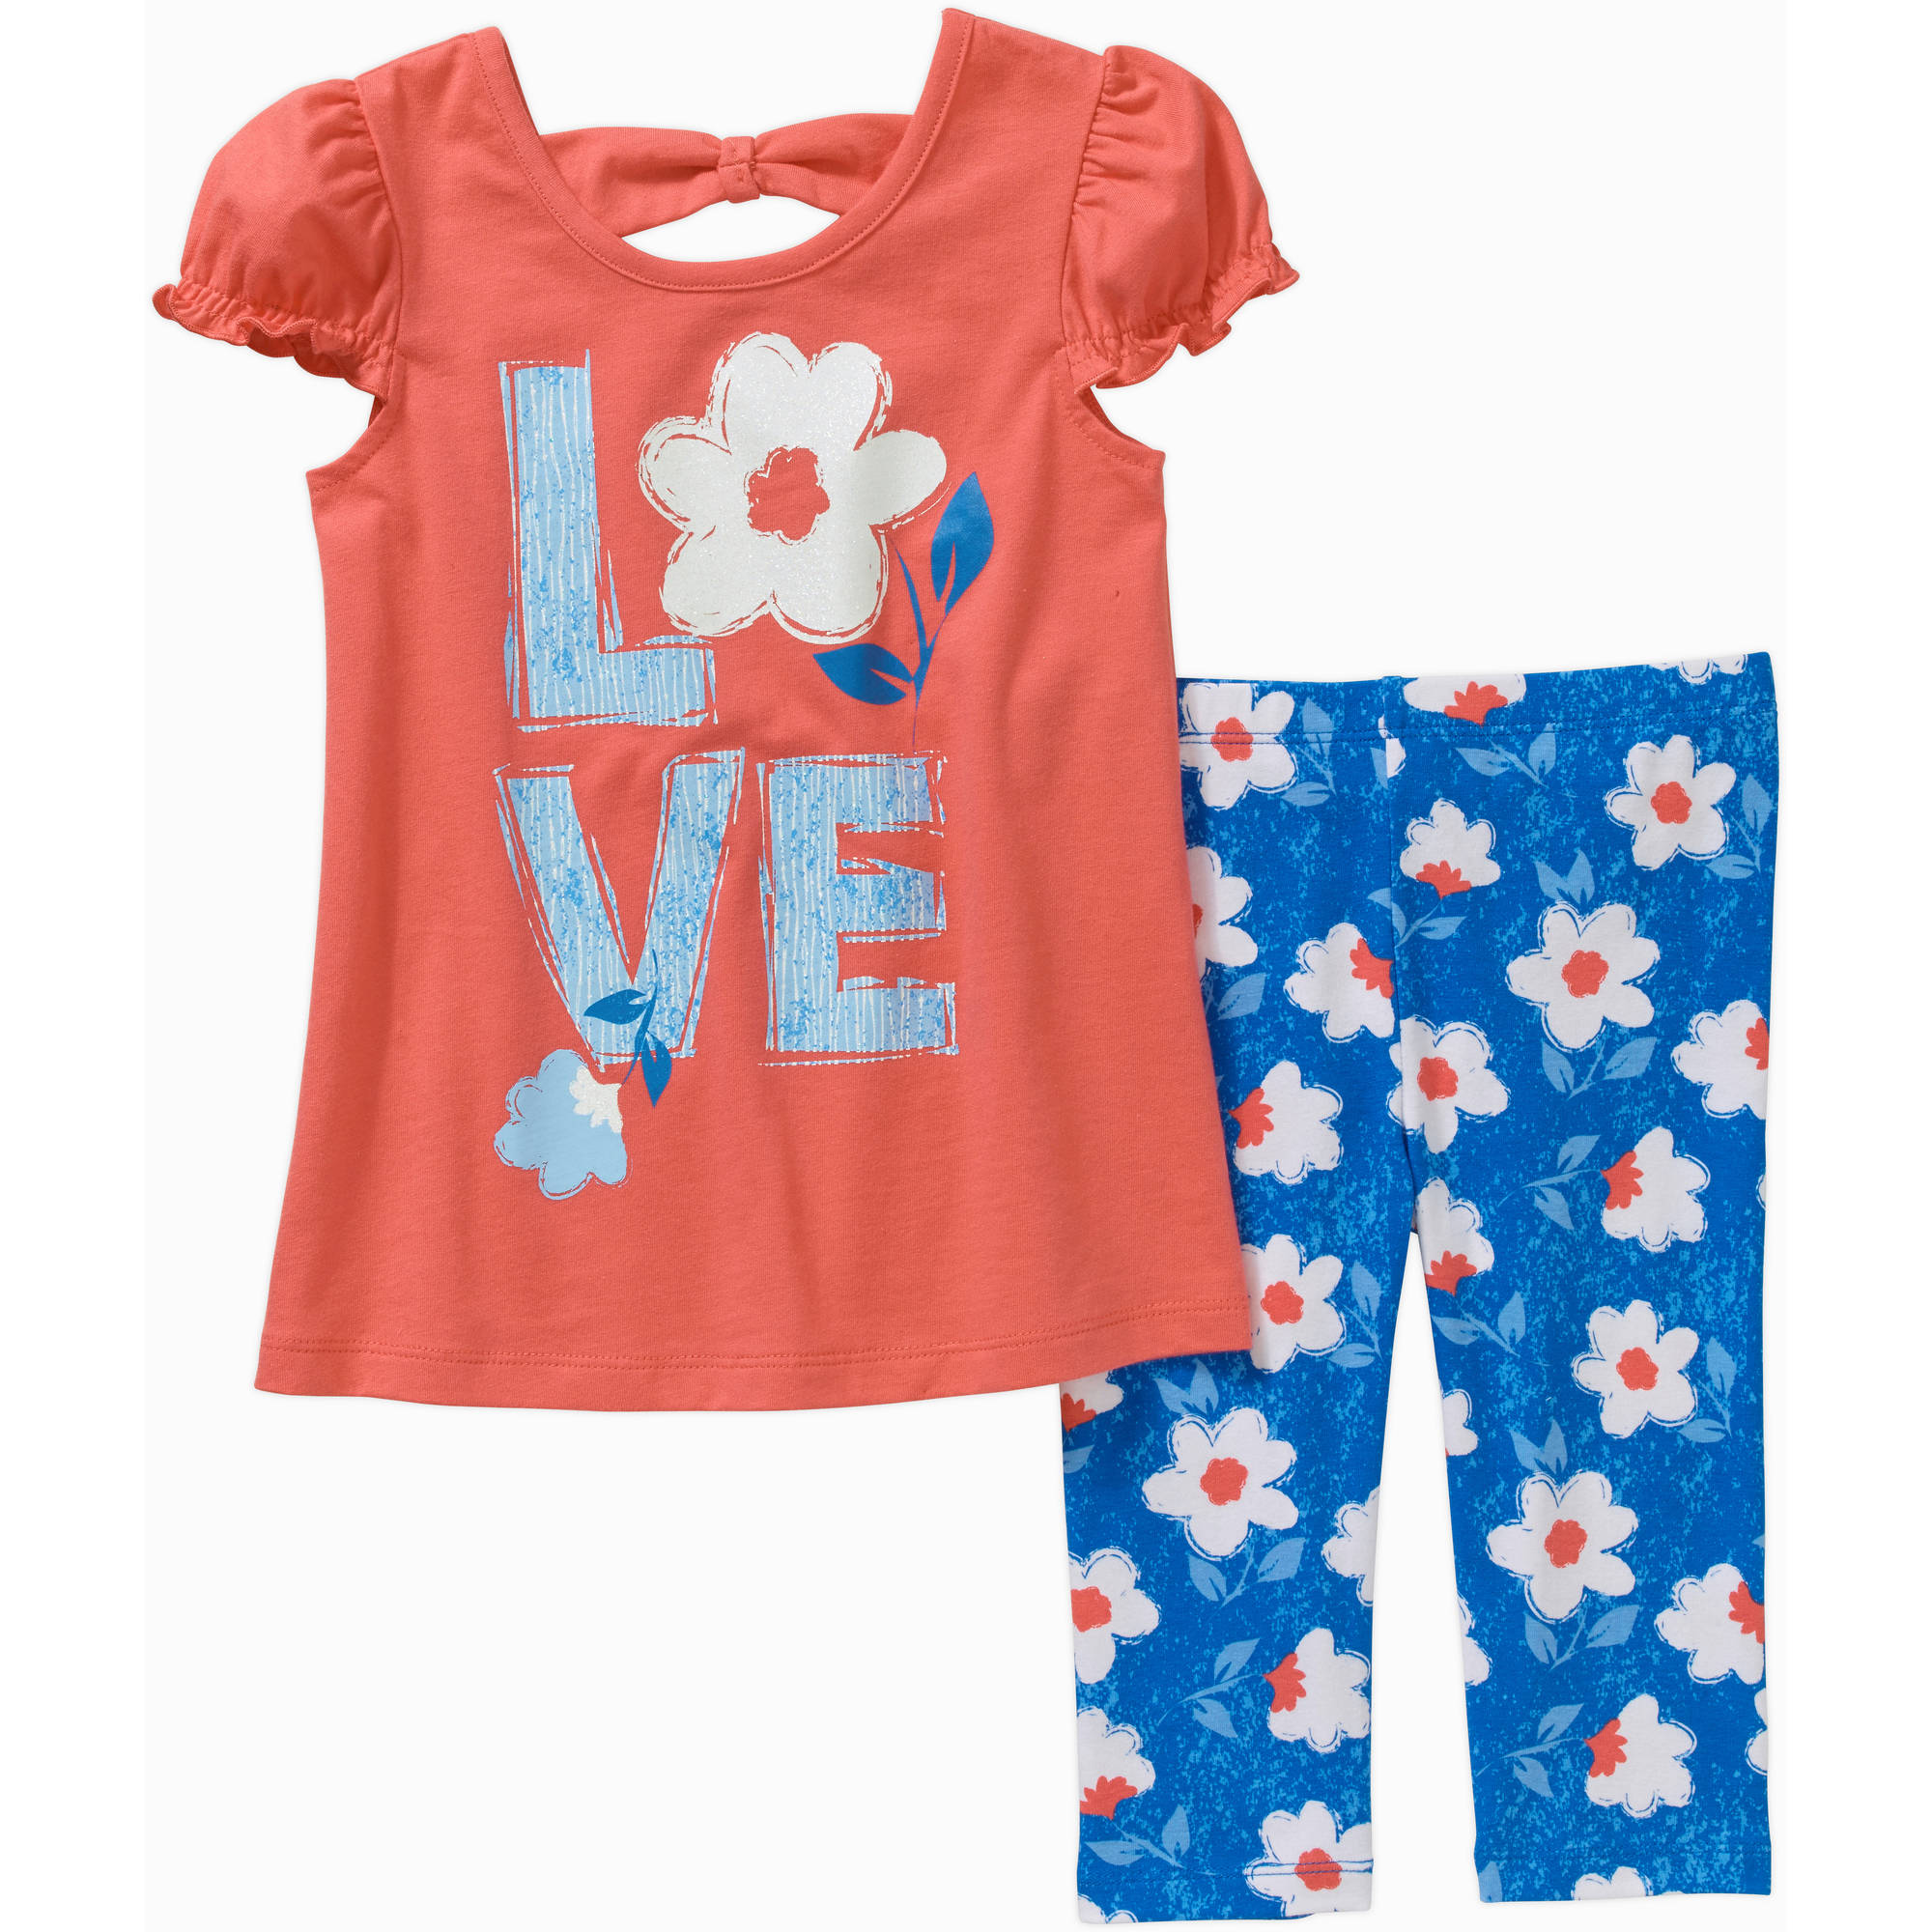 Healthtex Toddler Girls' Short Sleeve Knit Tunic and Leggings Outfit Set